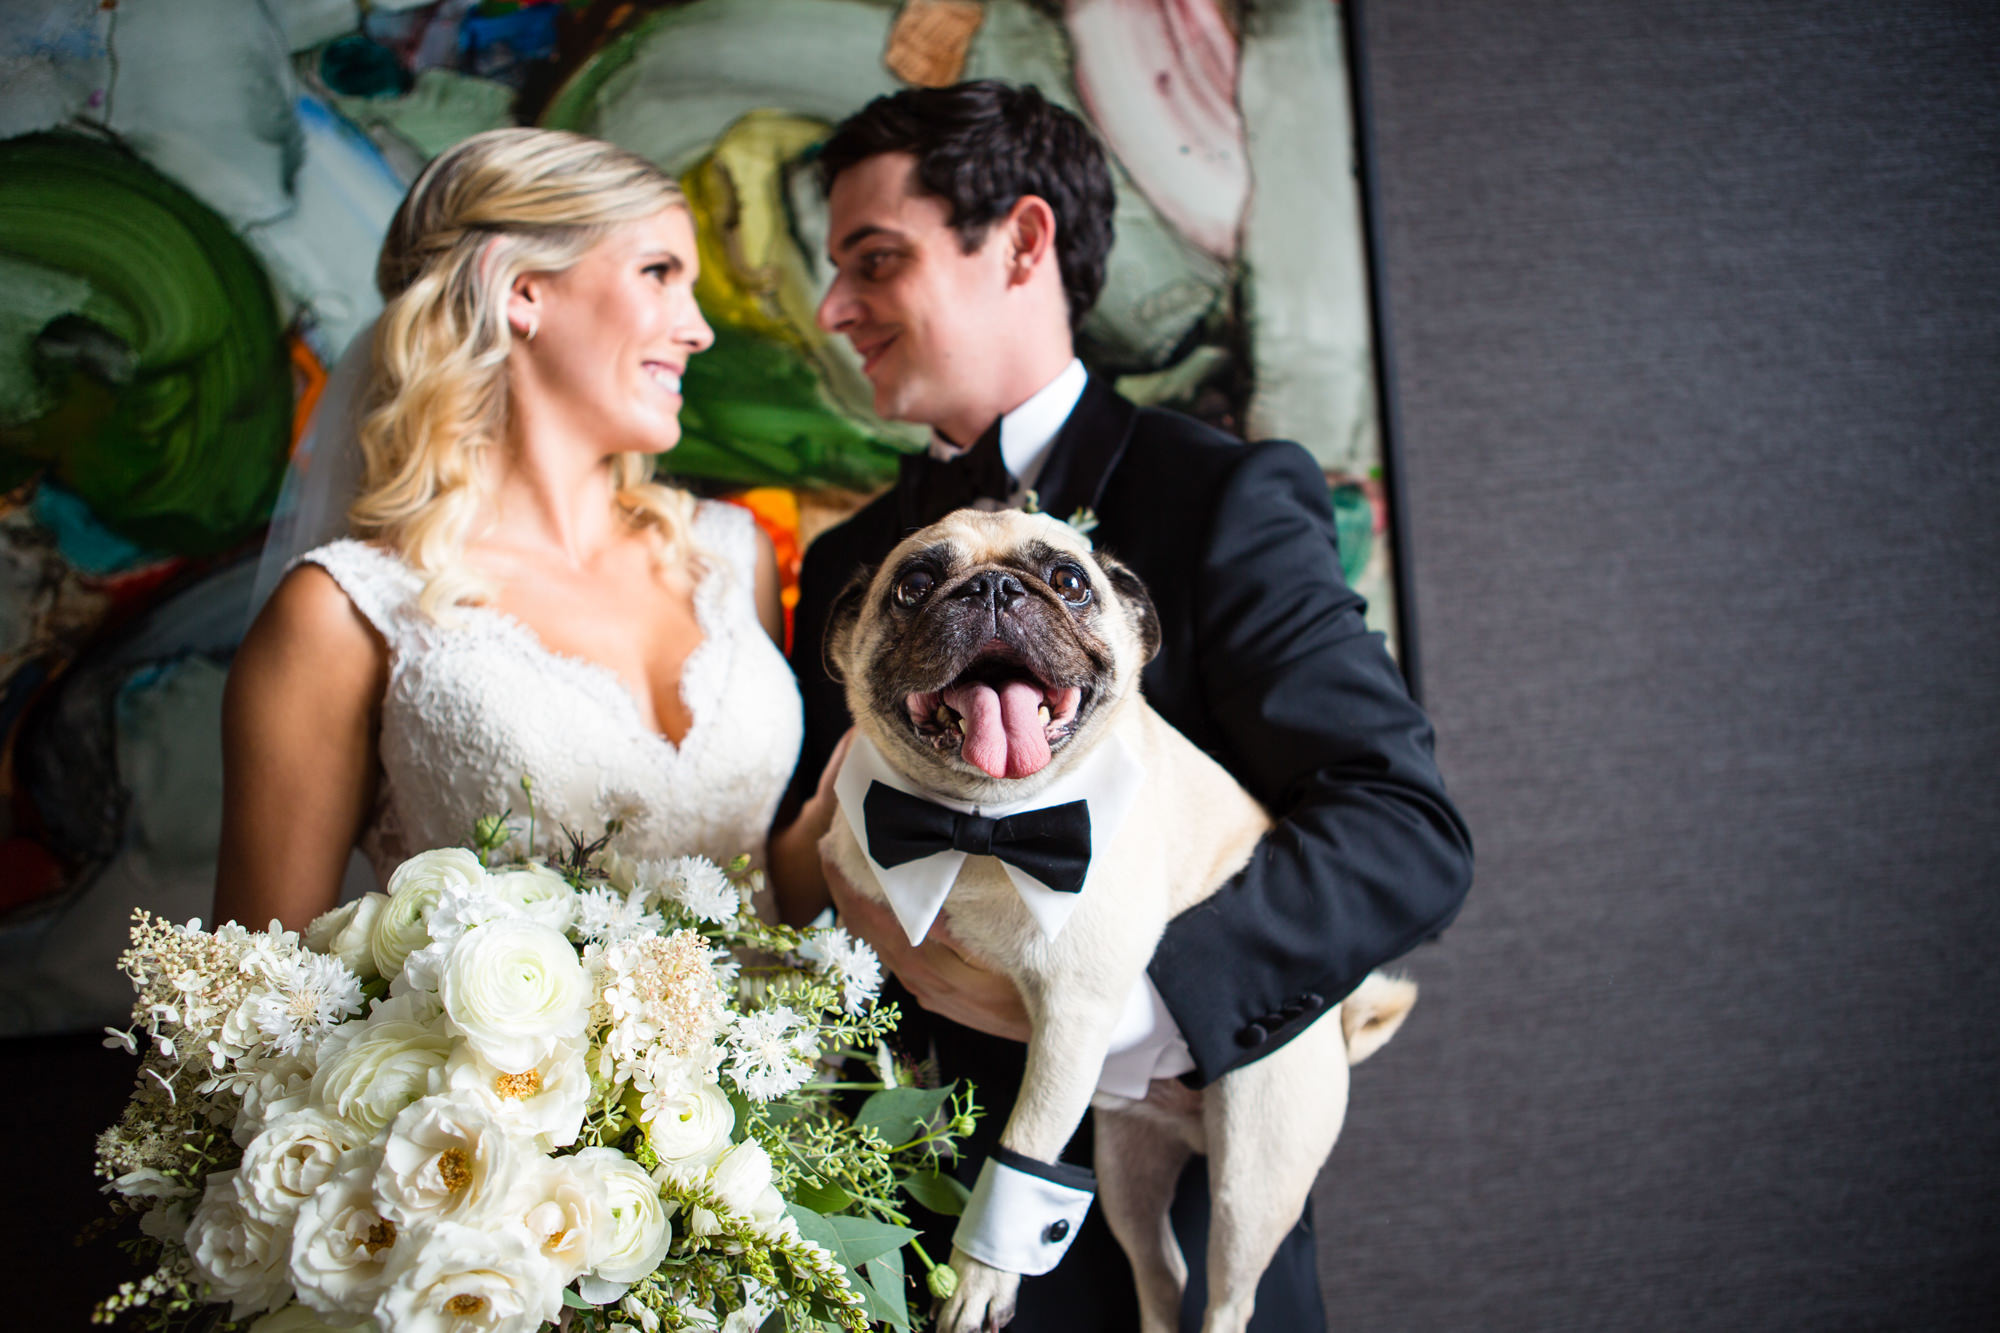 Boxer in bowtie steals the show - photo by La Vie Photography